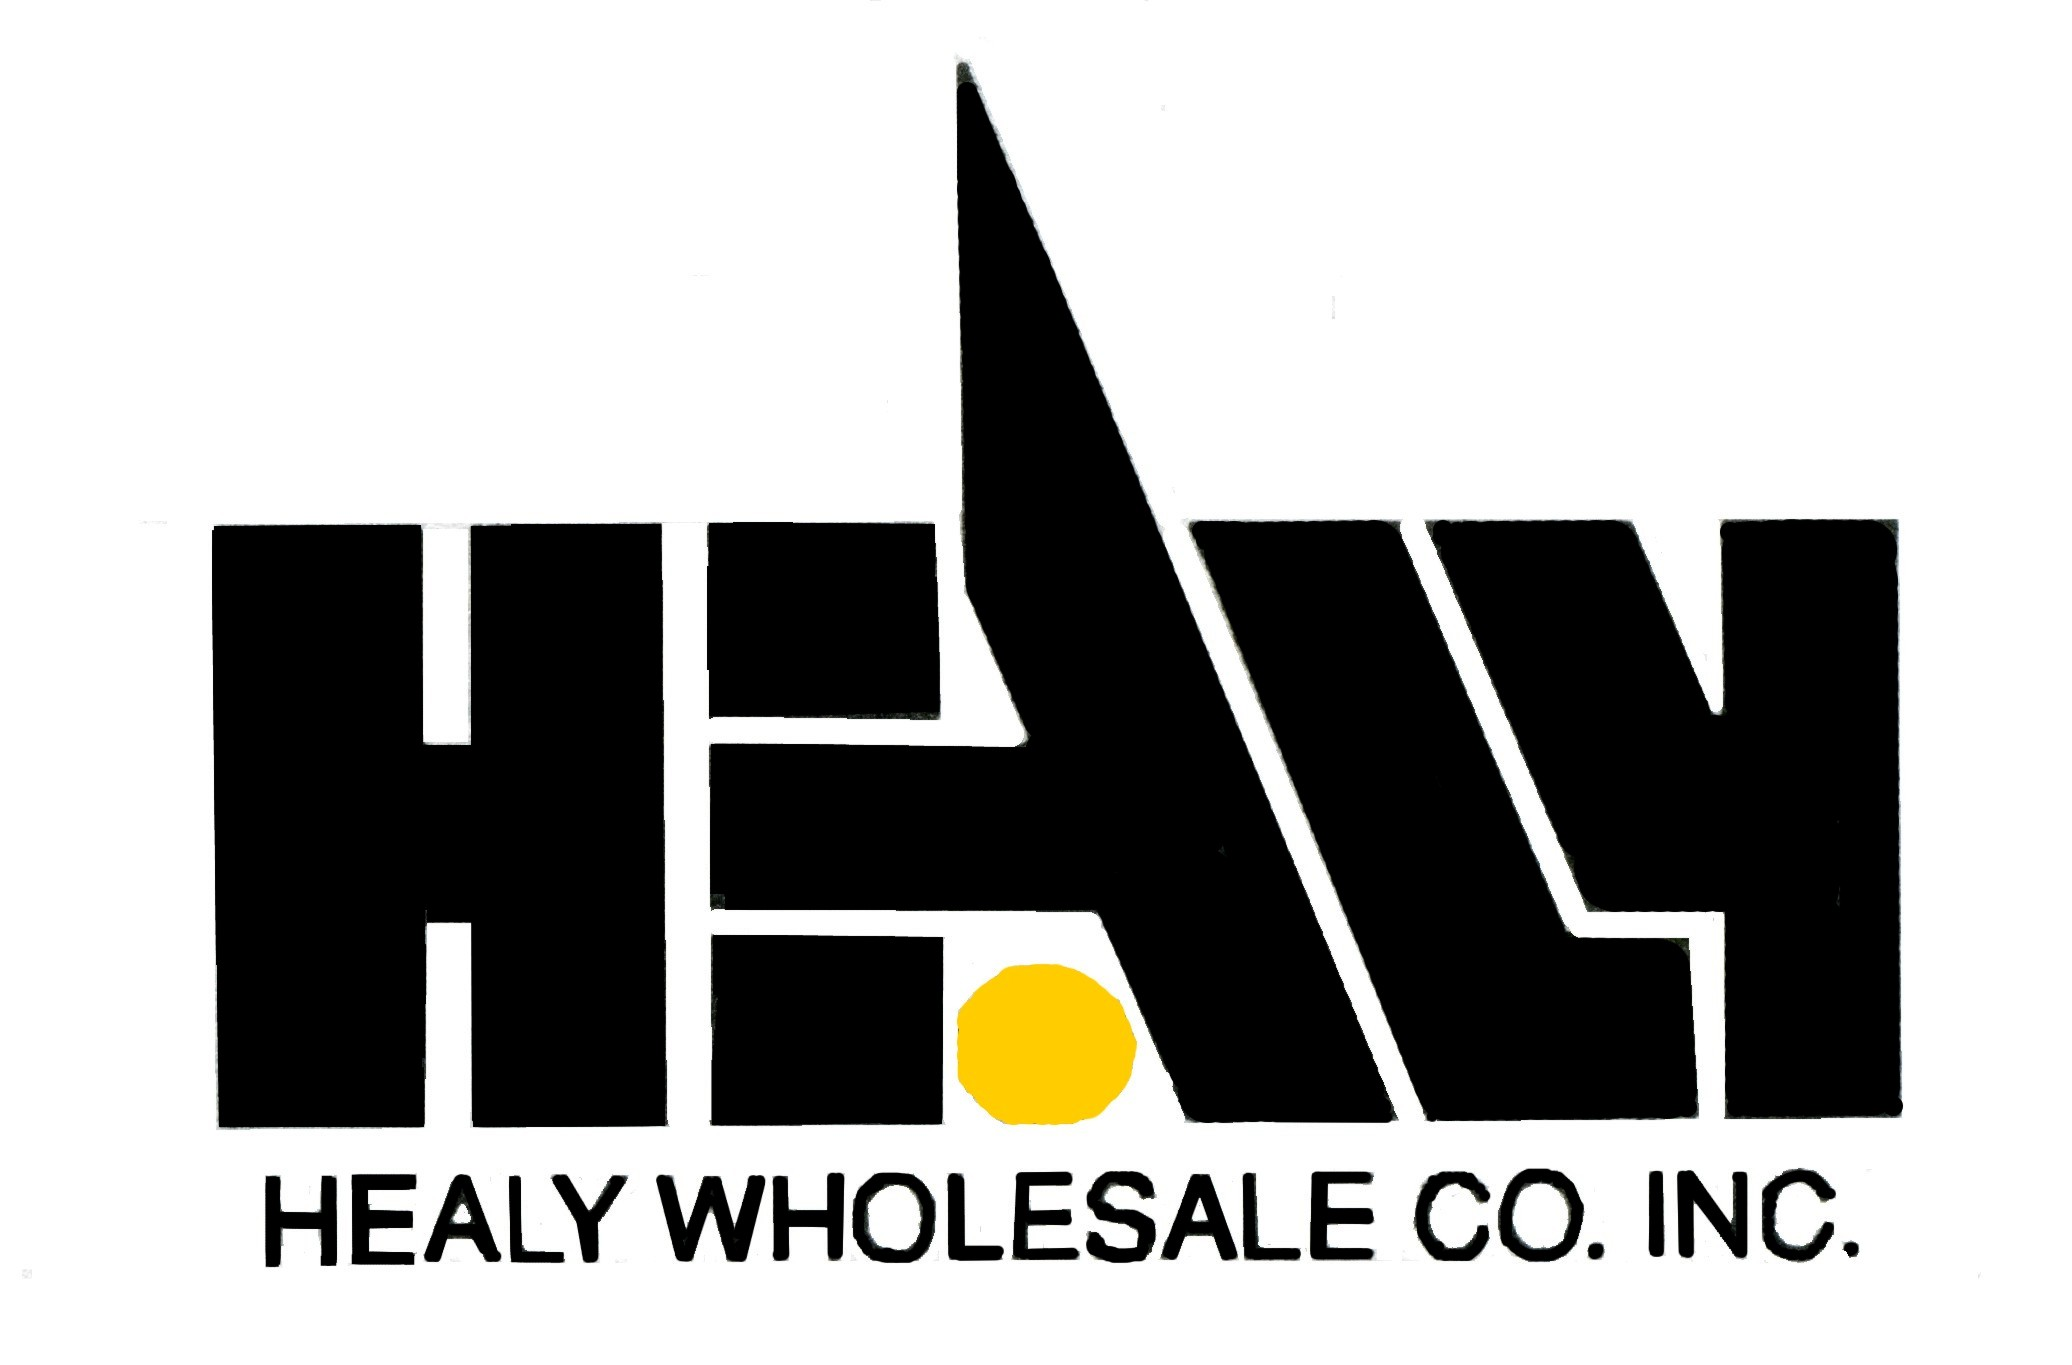 Healy Wholesale